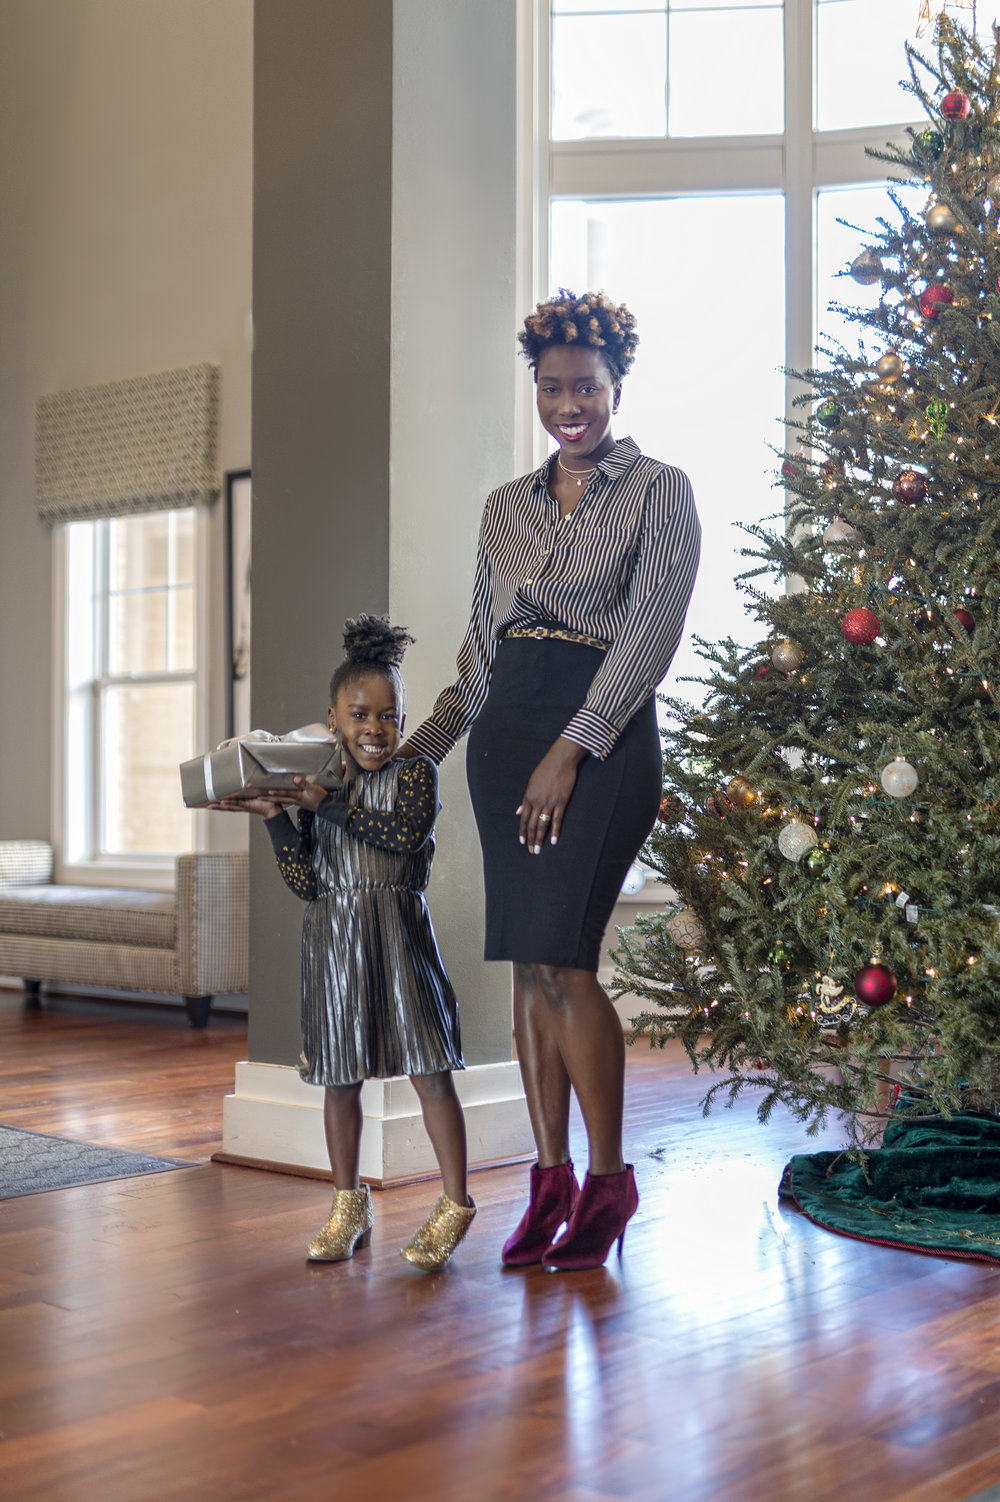 OLD NAVY HOLIDAY PARTY STYLE — DAYNA BOLDEN